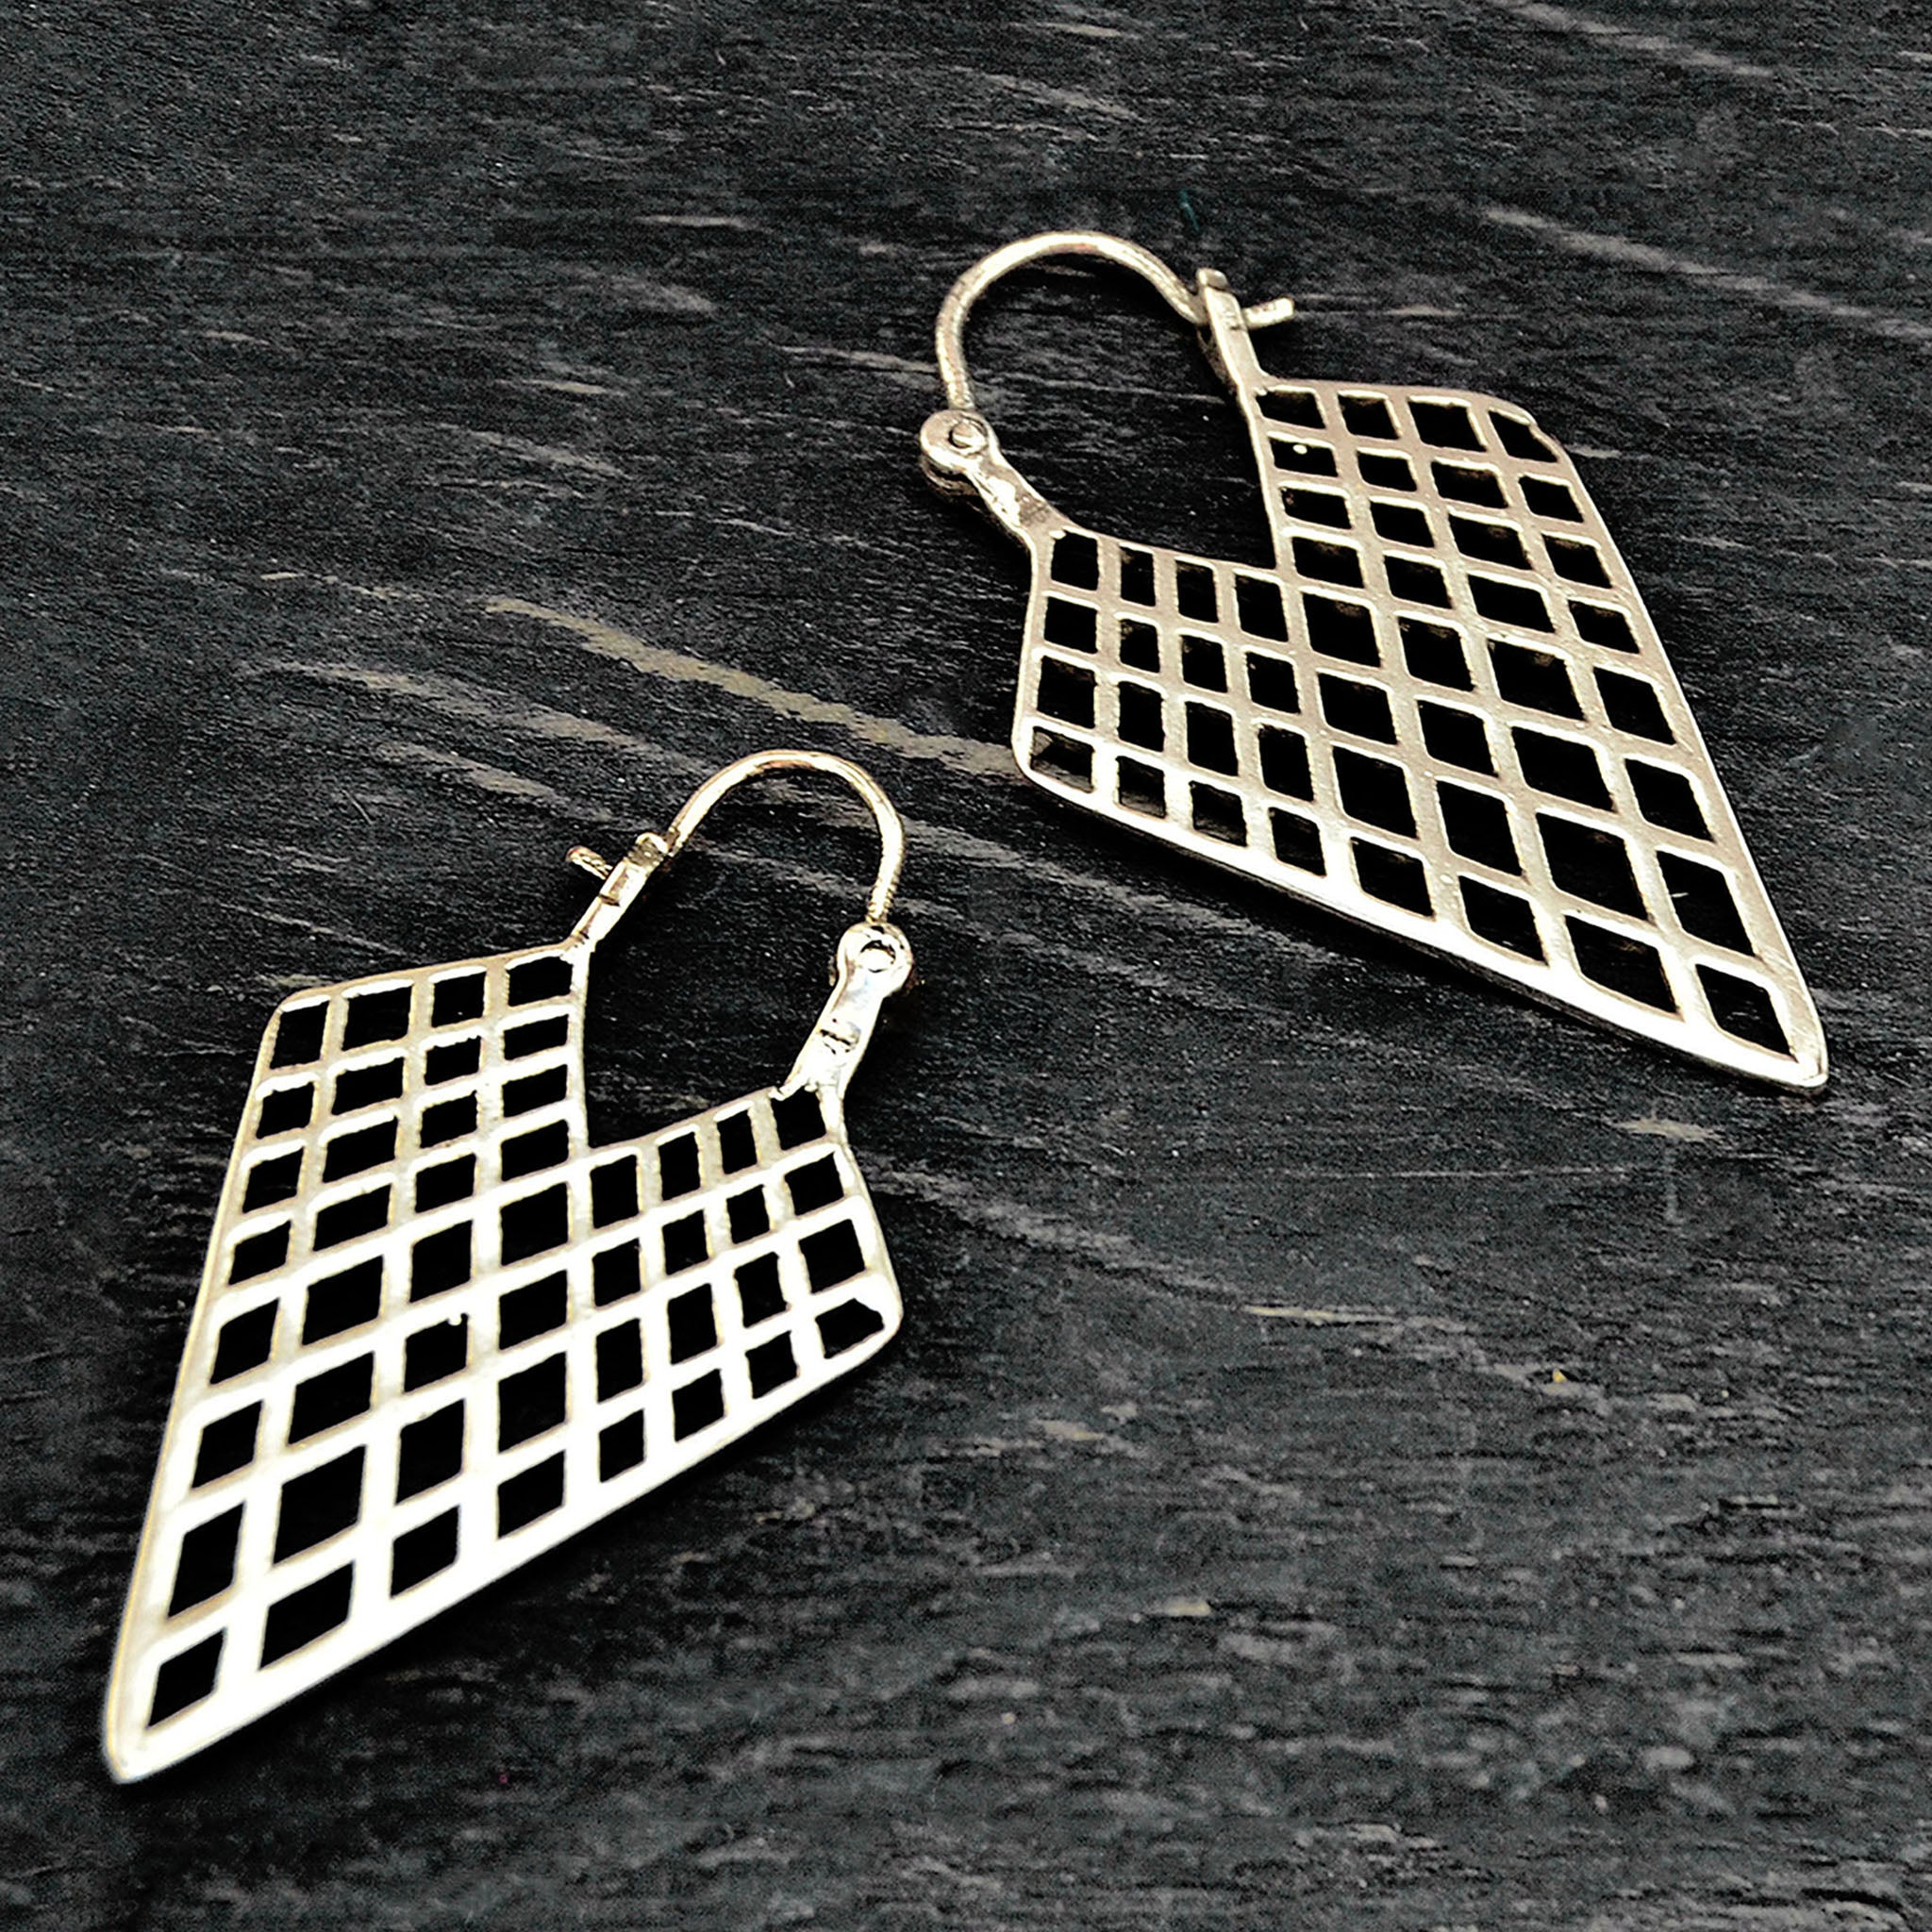 Silver boho geometric triangle earrings